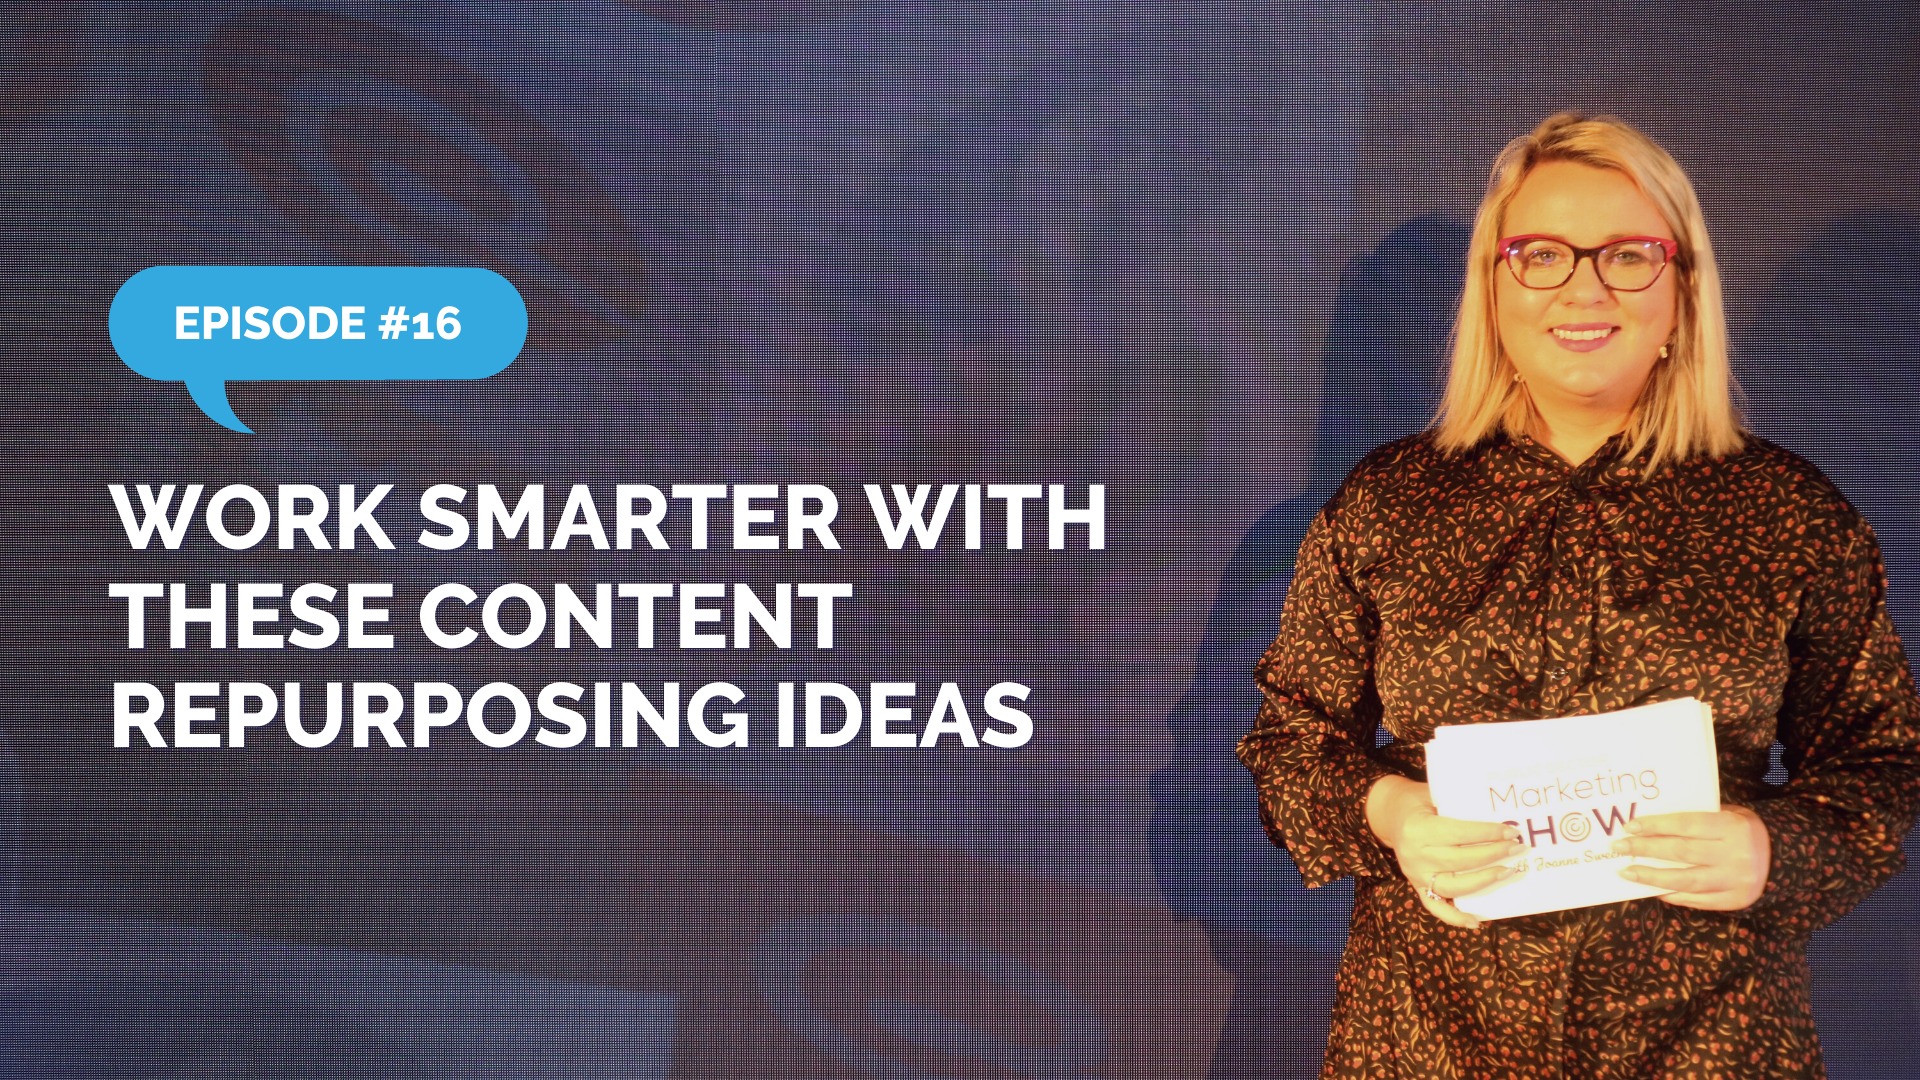 Episode 16 - Work Smarter with These Content Repurposing Ideas